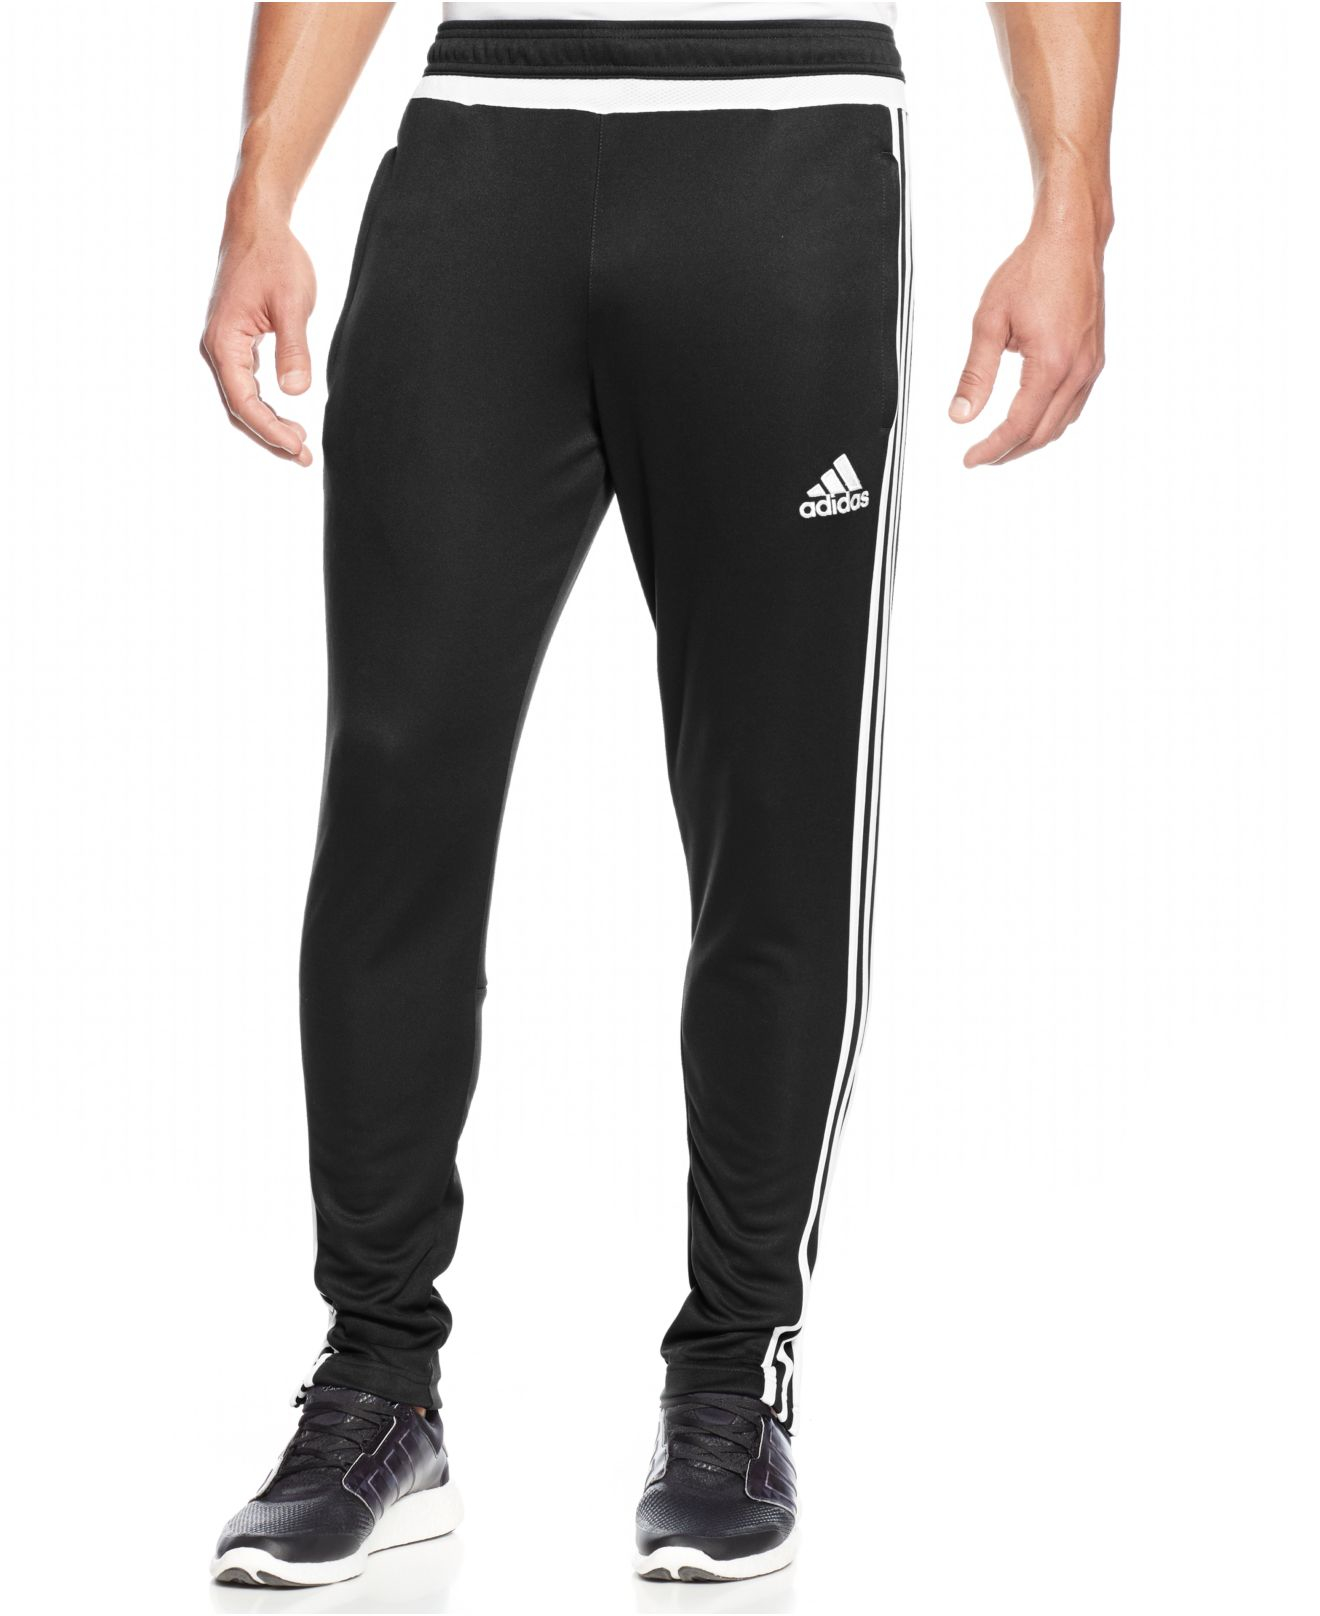 Perfect Black Adidas Climacool Aeroknit Shorts  Women Clothing Sale